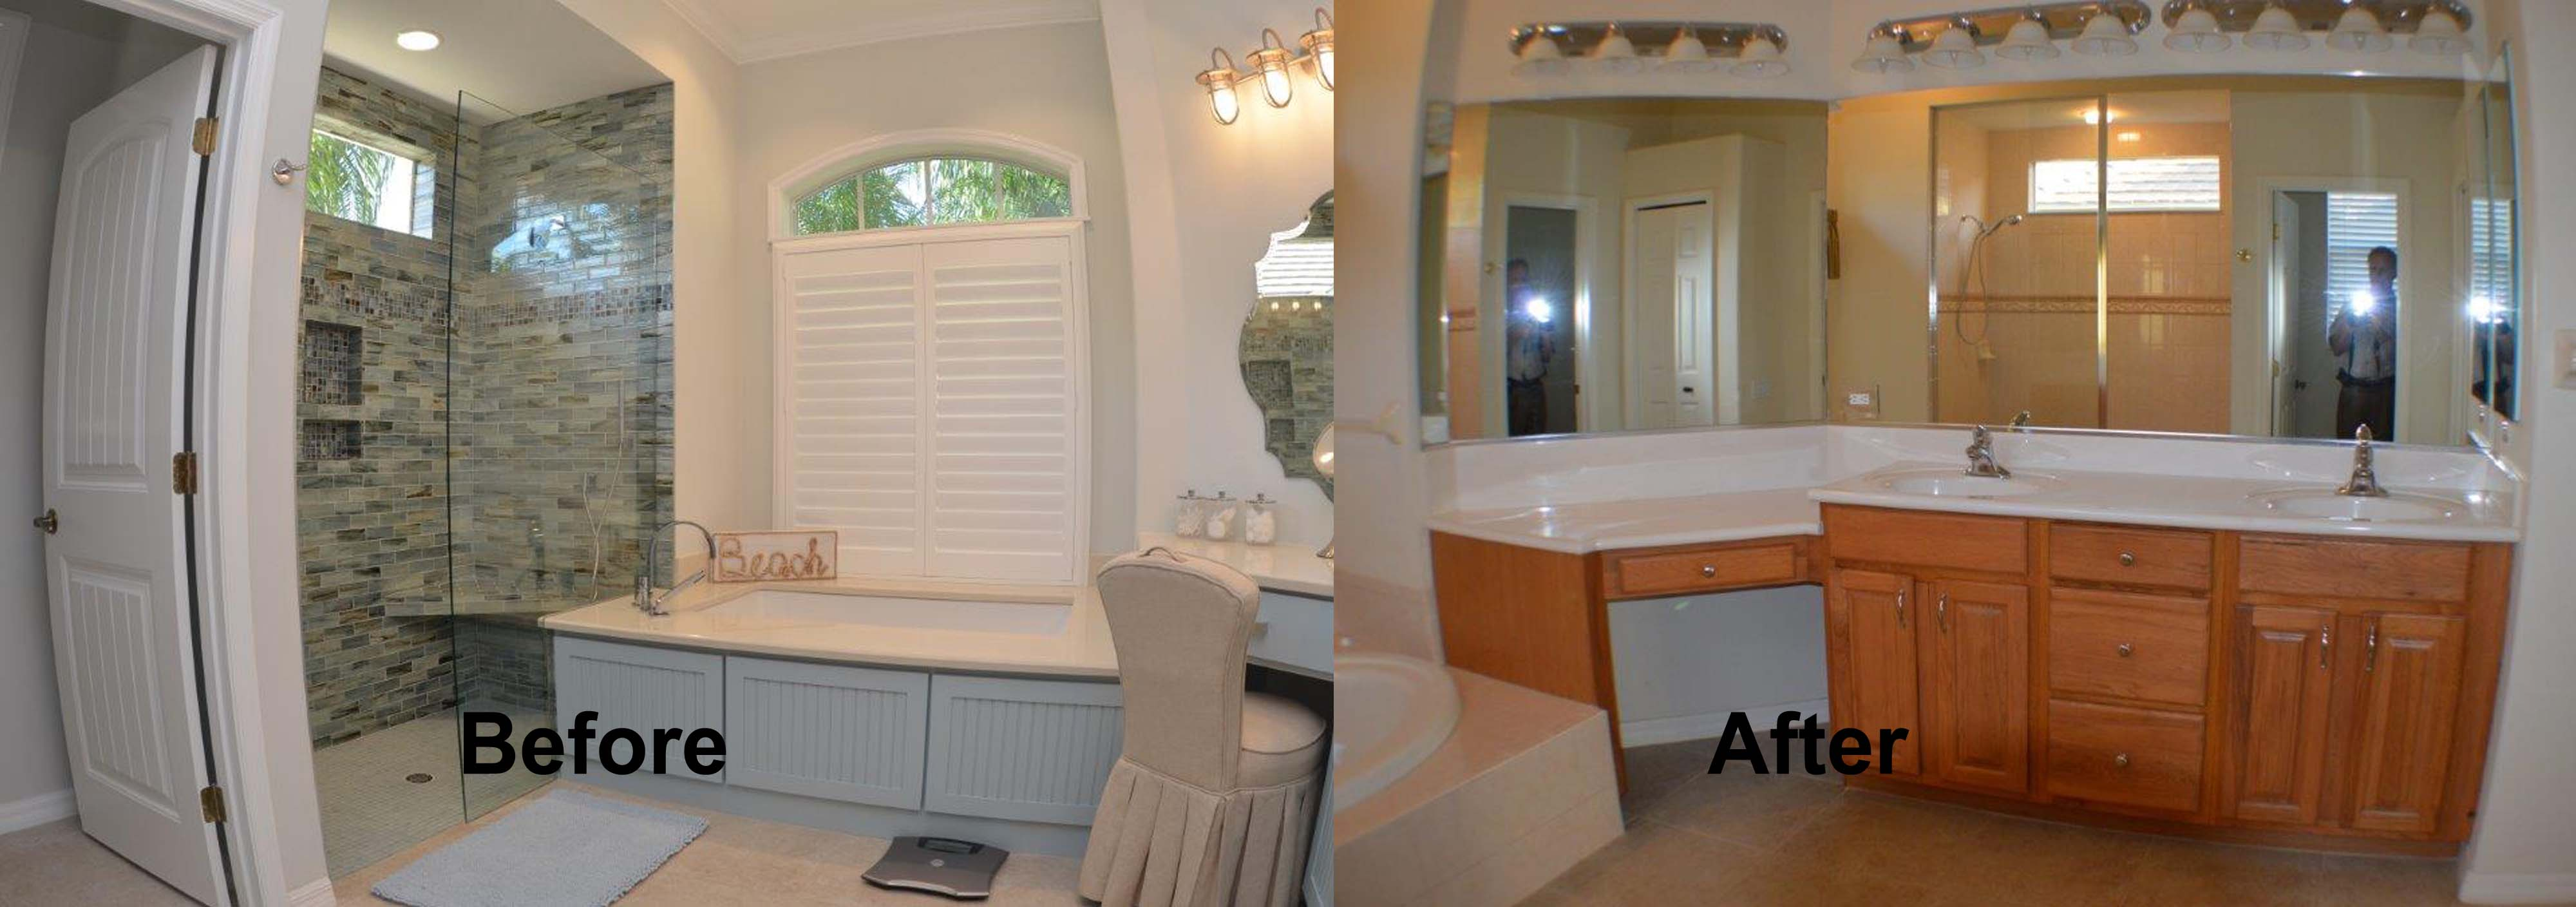 venice florida master bath remodel project - kitchen and bath on the